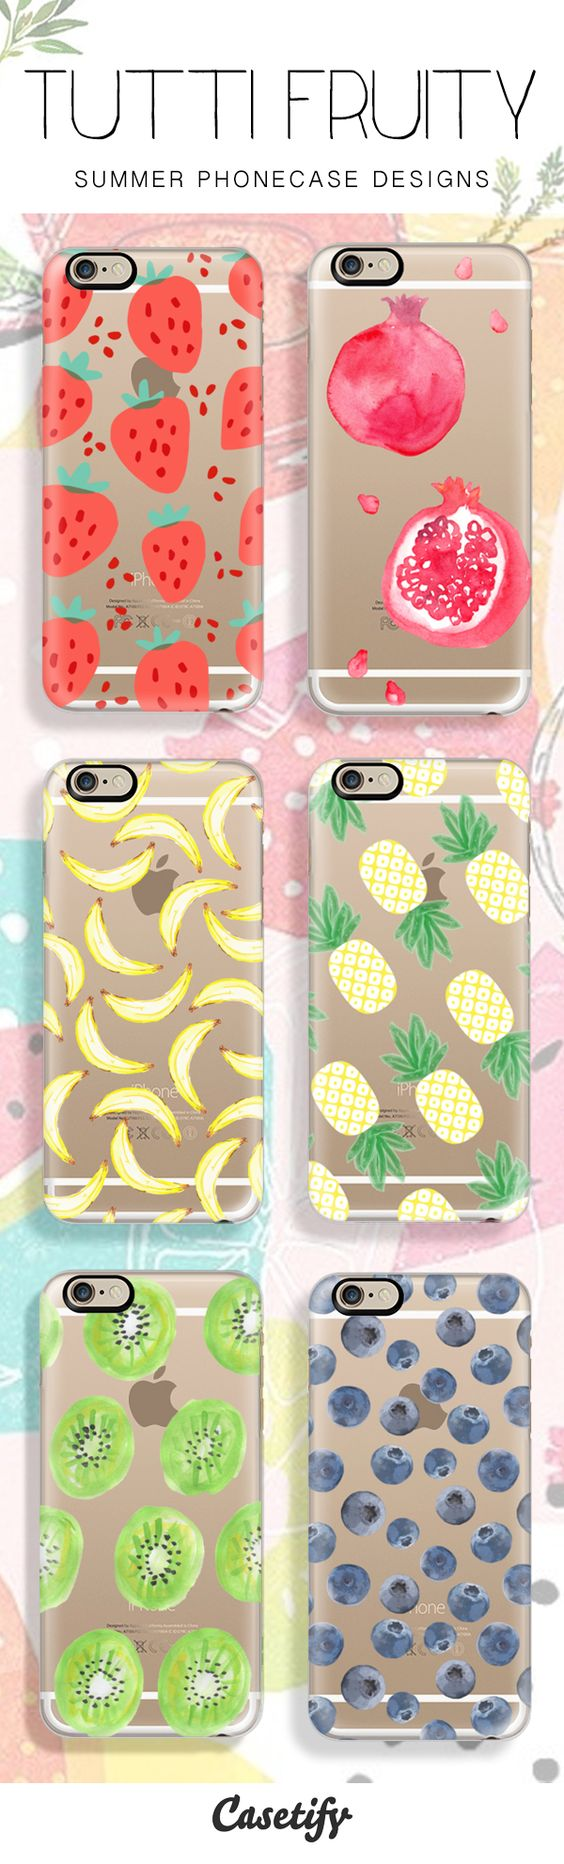 Flavourful Ways to Liven Up Your Summer - from sweet strawberries to juicy pineapples - we have it all. Shop our Tutti Fruity Summer Phonecase Designs here: